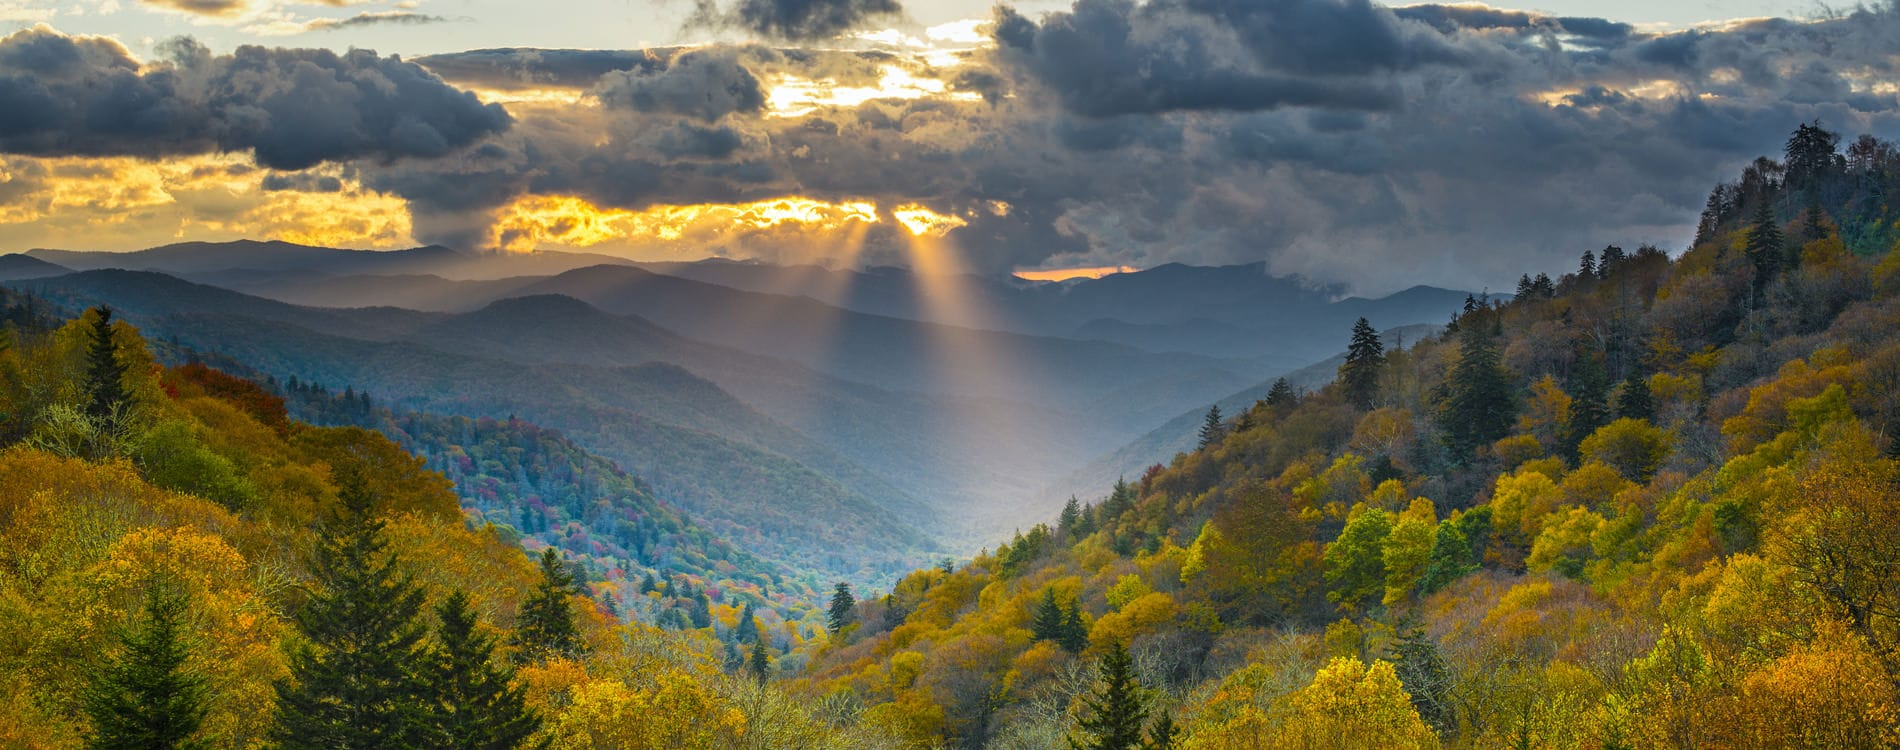 Sunrise in Great Smoky Mountain National Park Tennessee